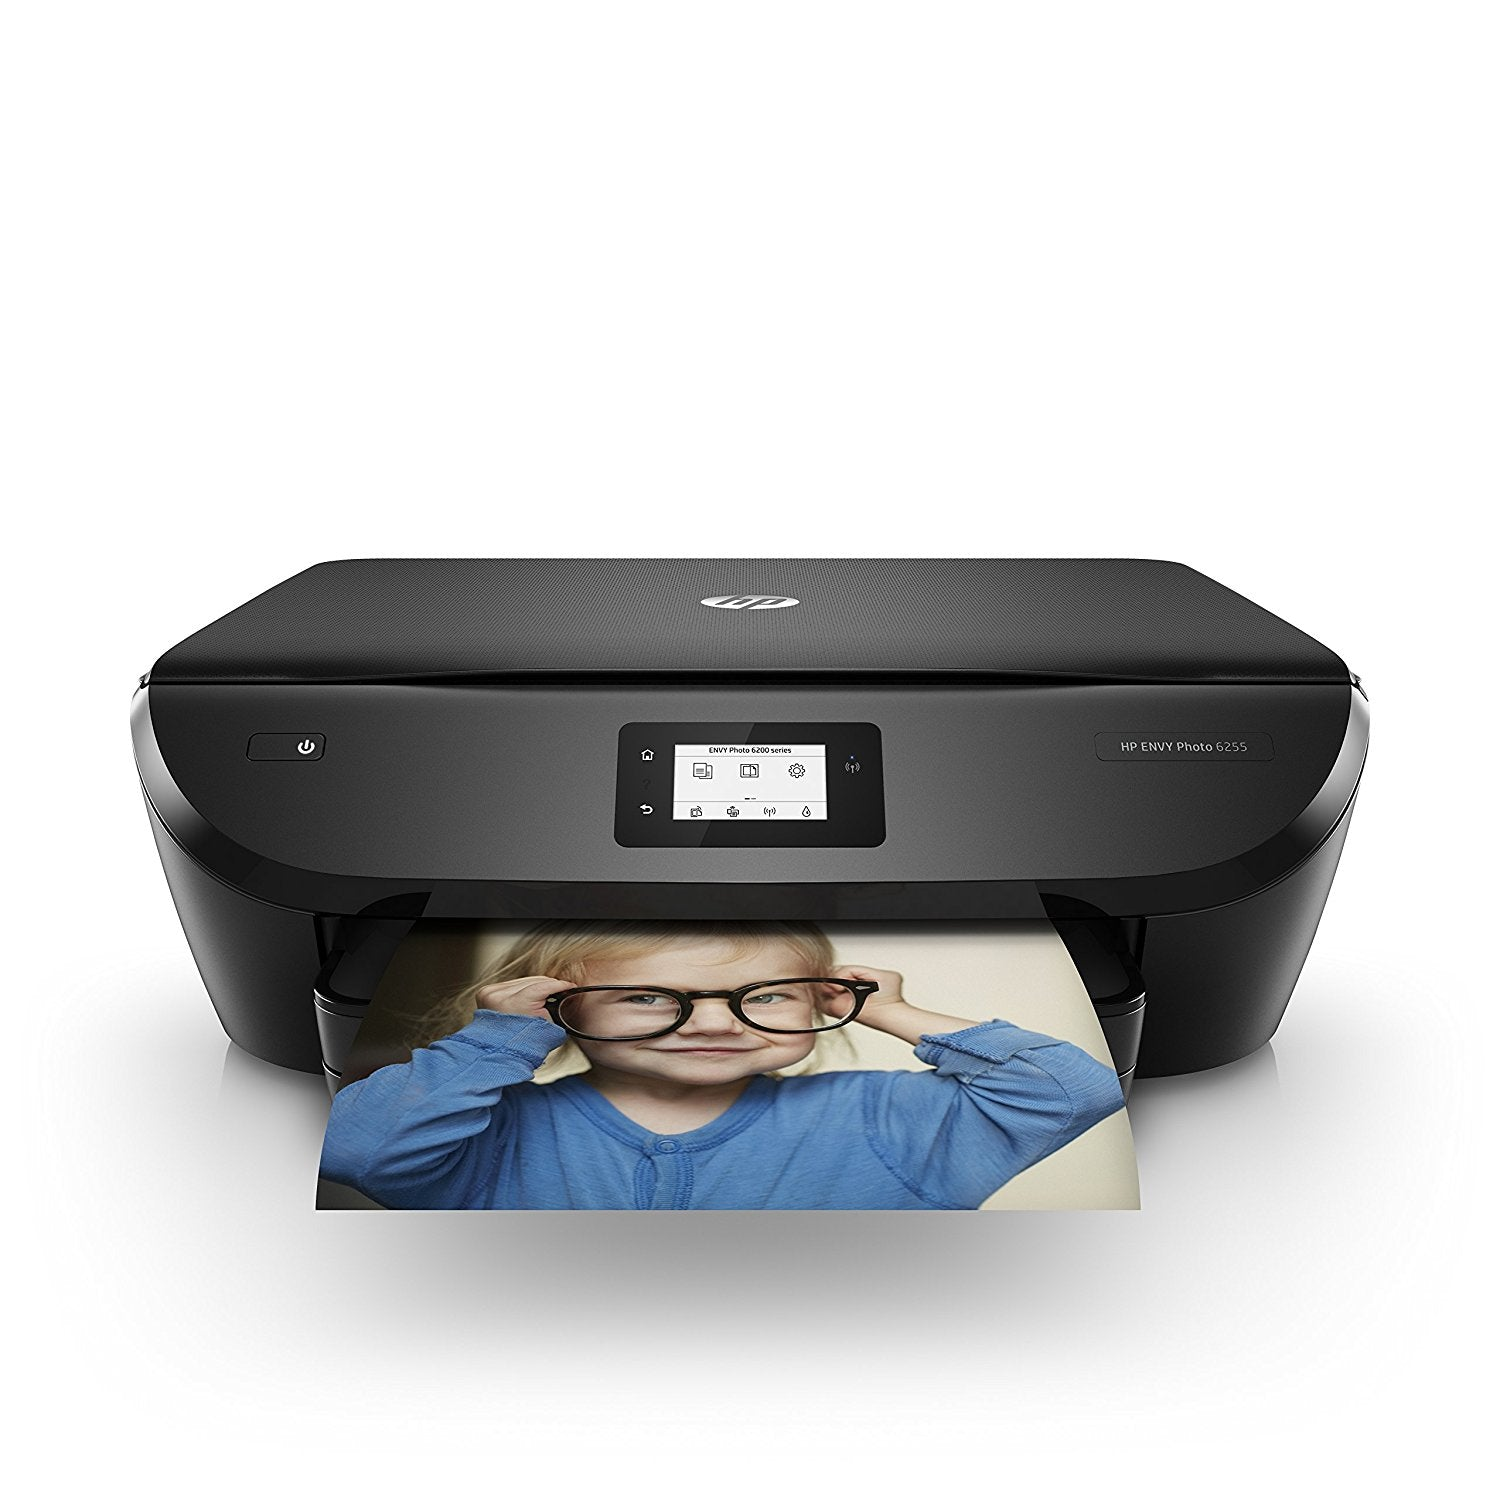 Get true-to-life photos and increased versatility. Produce authentic colors, and set up, connect, and print right from your mobile device.1 Print, scan, and copy with ease. Dynamic security enabled printer. Intended to be used with cartridges using only HP original electronic circuitry. Cartridges with modified or non-HP electronic circuitry may not work, and those that work today may not work in the future.    Features Stunning photos for less than 5 centsWith HP Instant Ink, get ink delivered to your door and print photos for less than five cents.HP 64 ink cartridges deliver authentic colors so all your prints will shine.Create stunning borderless photos and flyers - right in your home.The power of your printer in the palm of your handPrinting photos just got easier - from social media, the cloud, and your camera-roll gallery.Amazing scanning, now on your smartphone. Scan and share to email or the cloud - from virtually anywhere.Ordering ink has never been easier - directly through